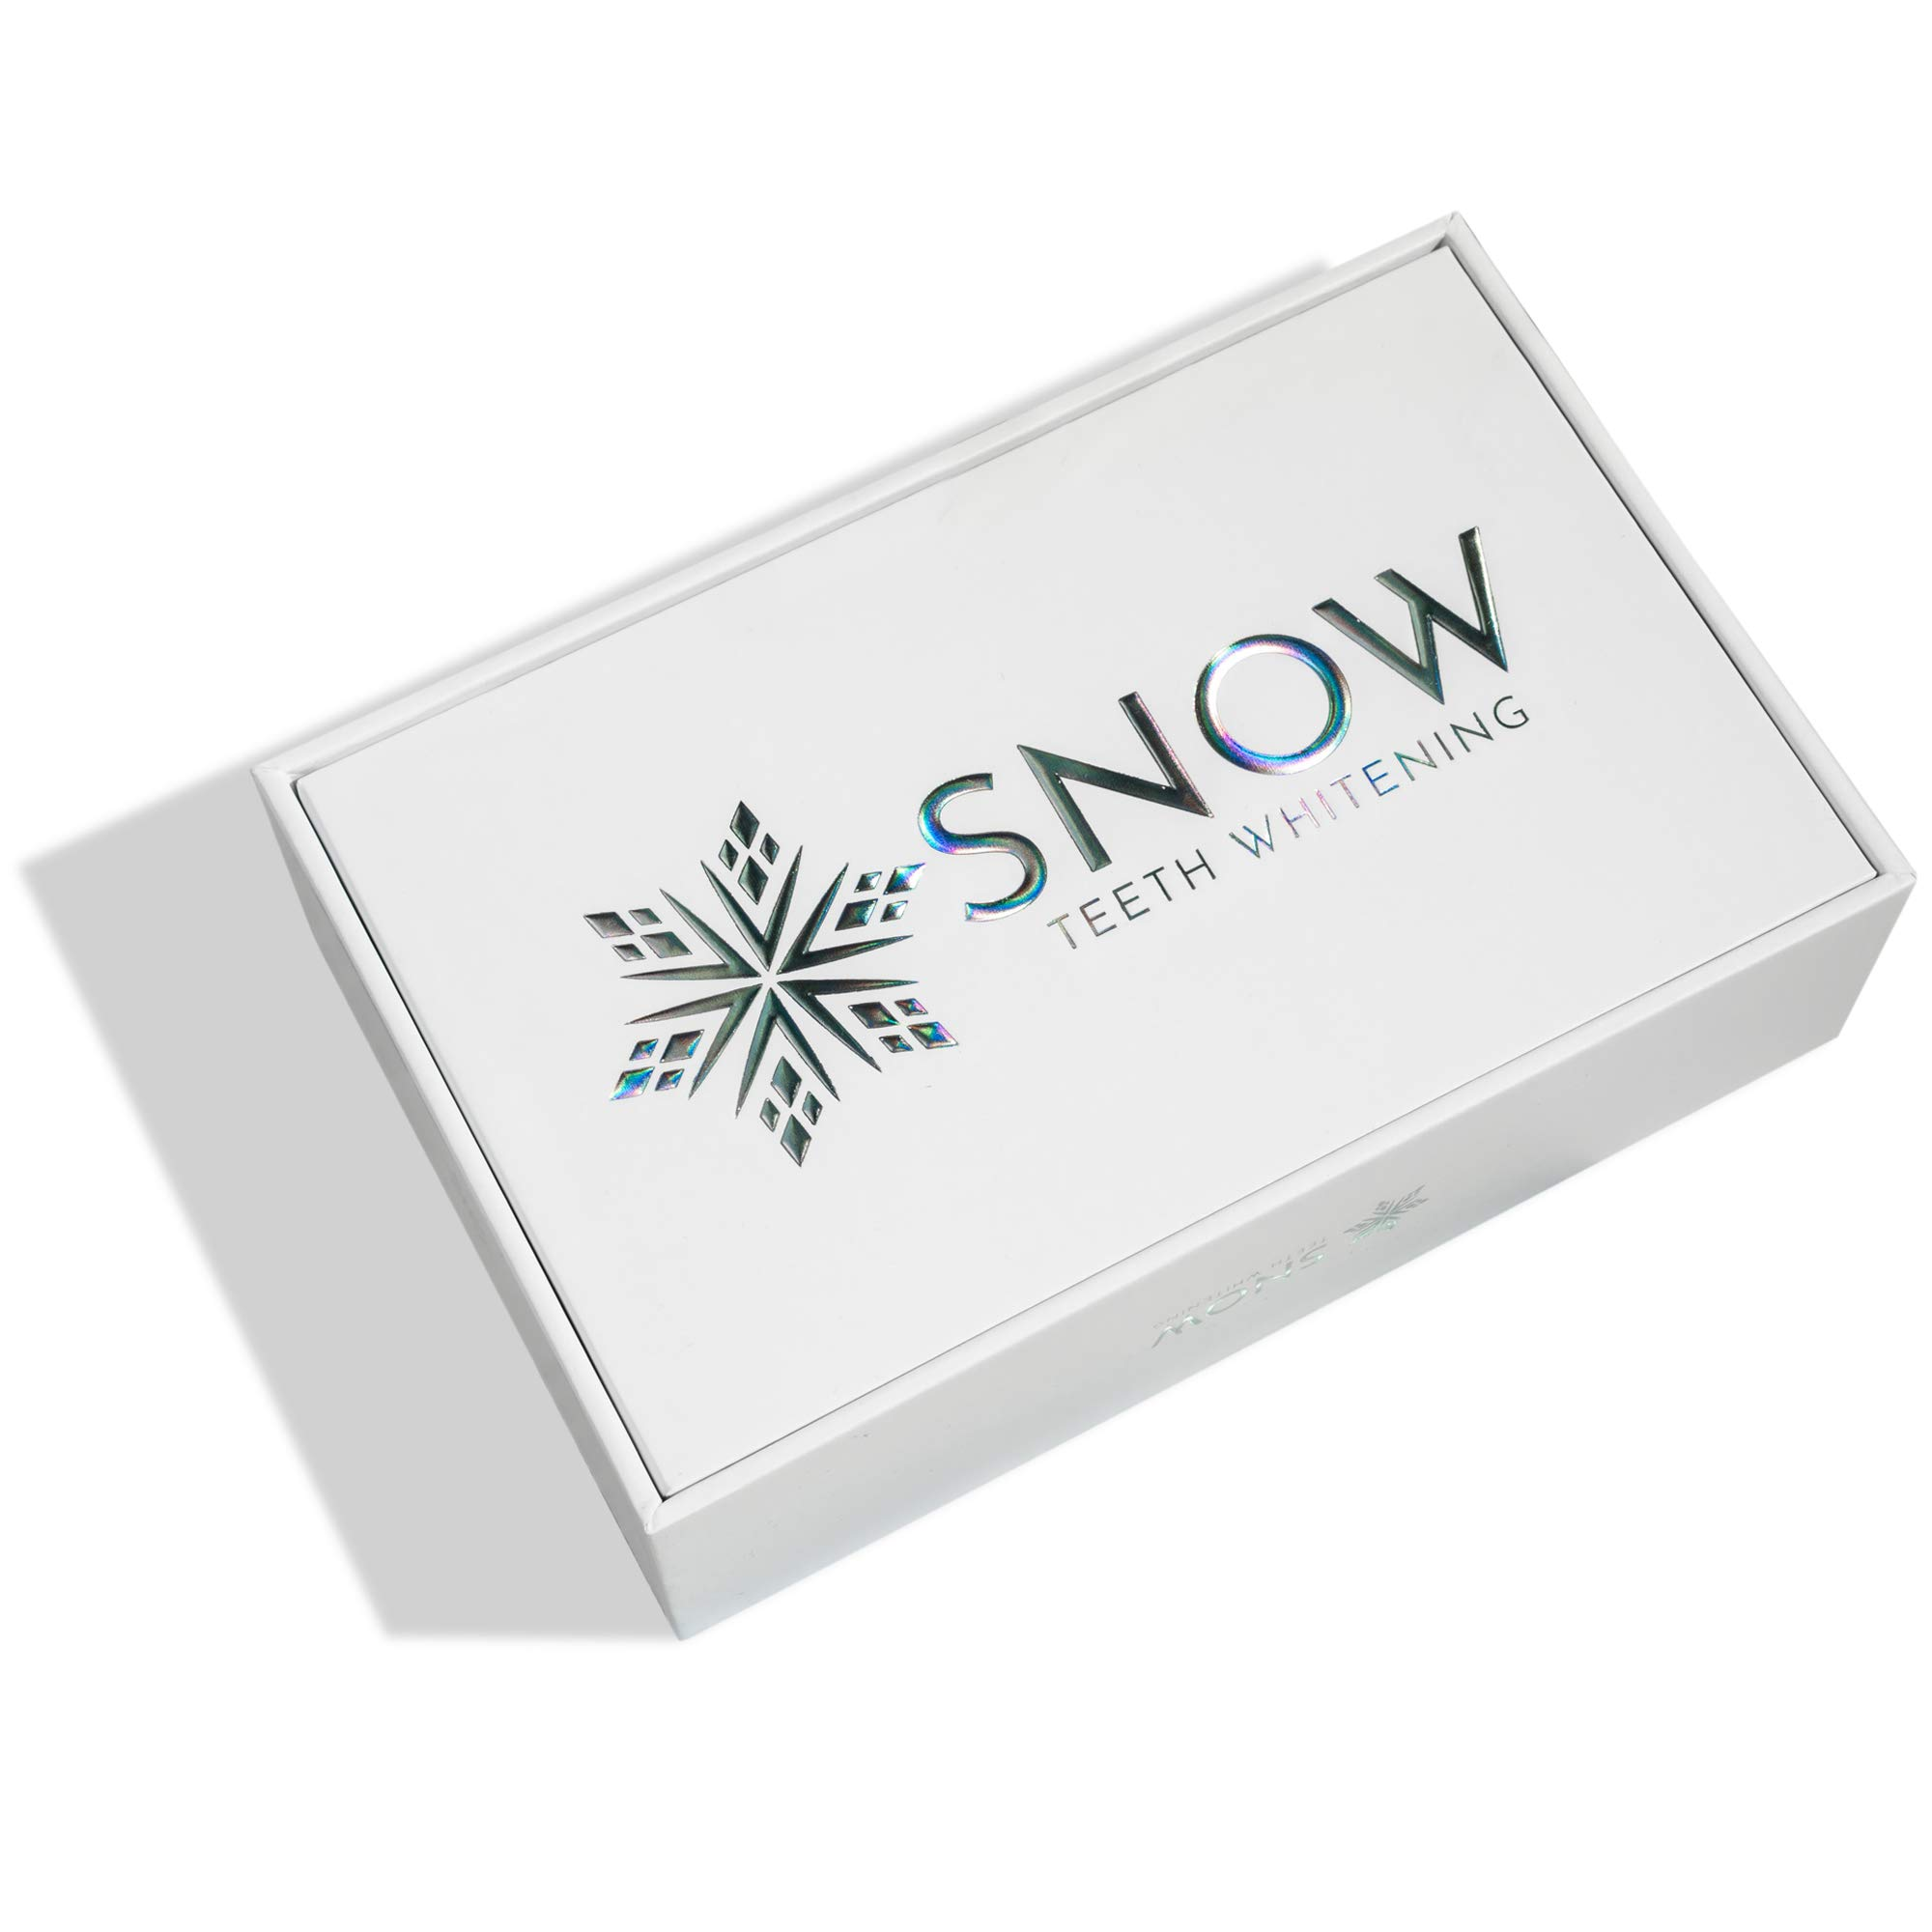 Snow Teeth Whitening Kit All In One At Home Teeth Whitening System